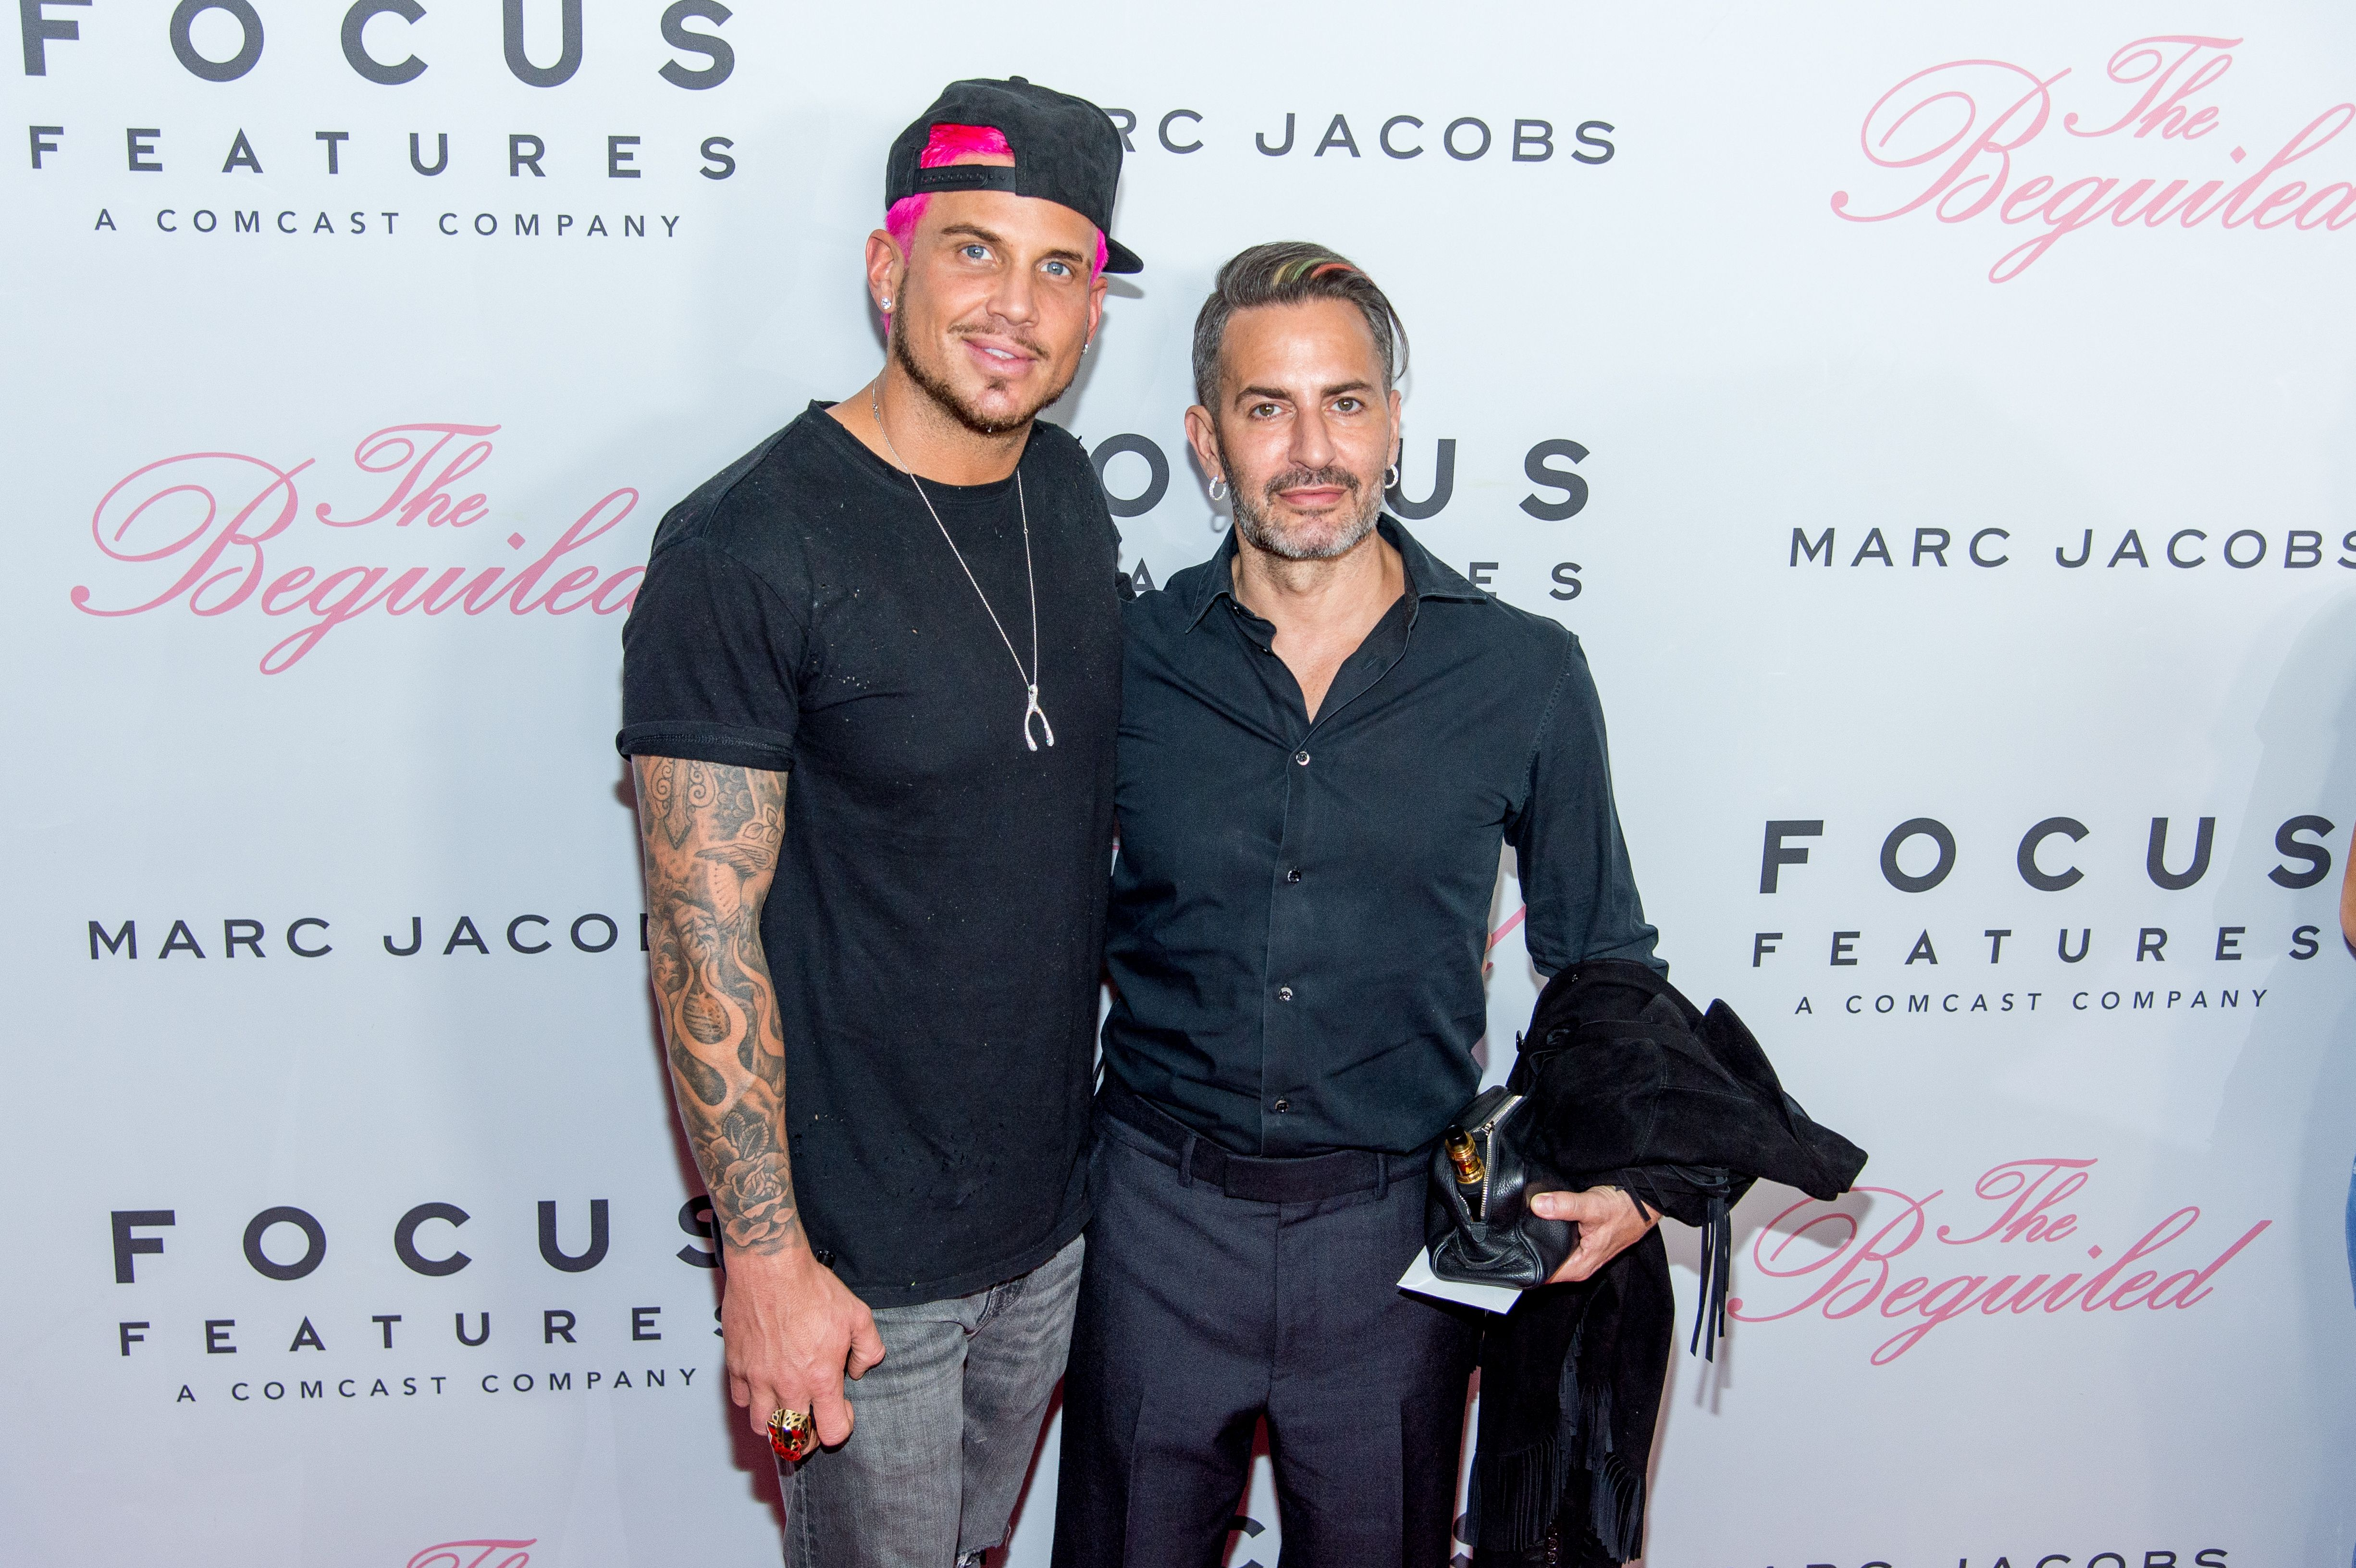 Who is Charly DeFrancesco? Marc Jacobs gets engaged in a Chipotle